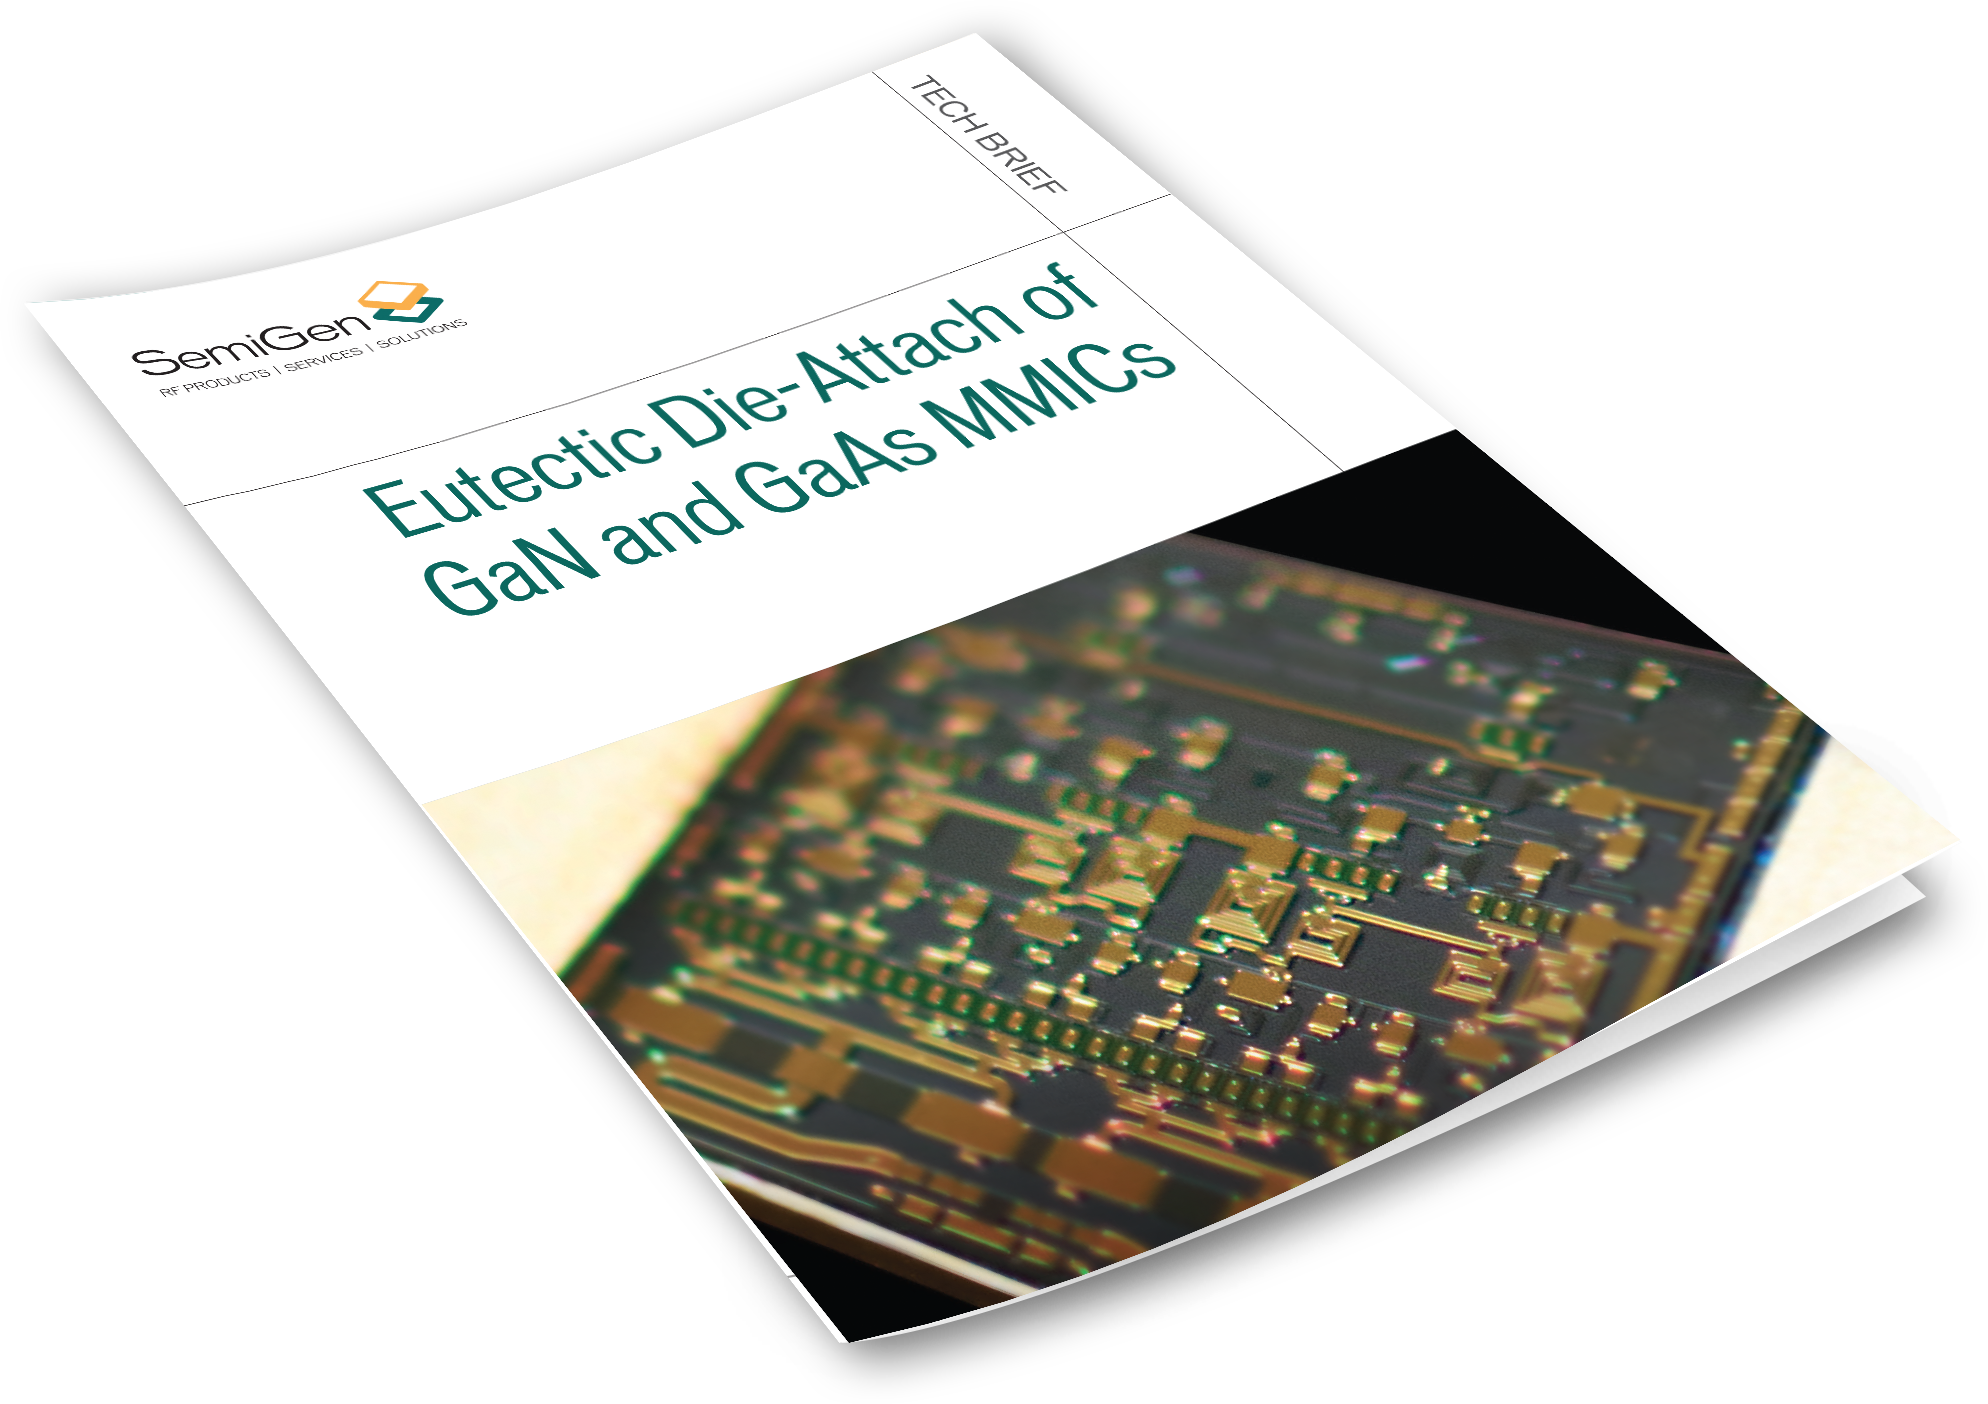 Tech Brief Describes the Best Eutectic Die-attach Method for MMICs in Hybrid Assemblies